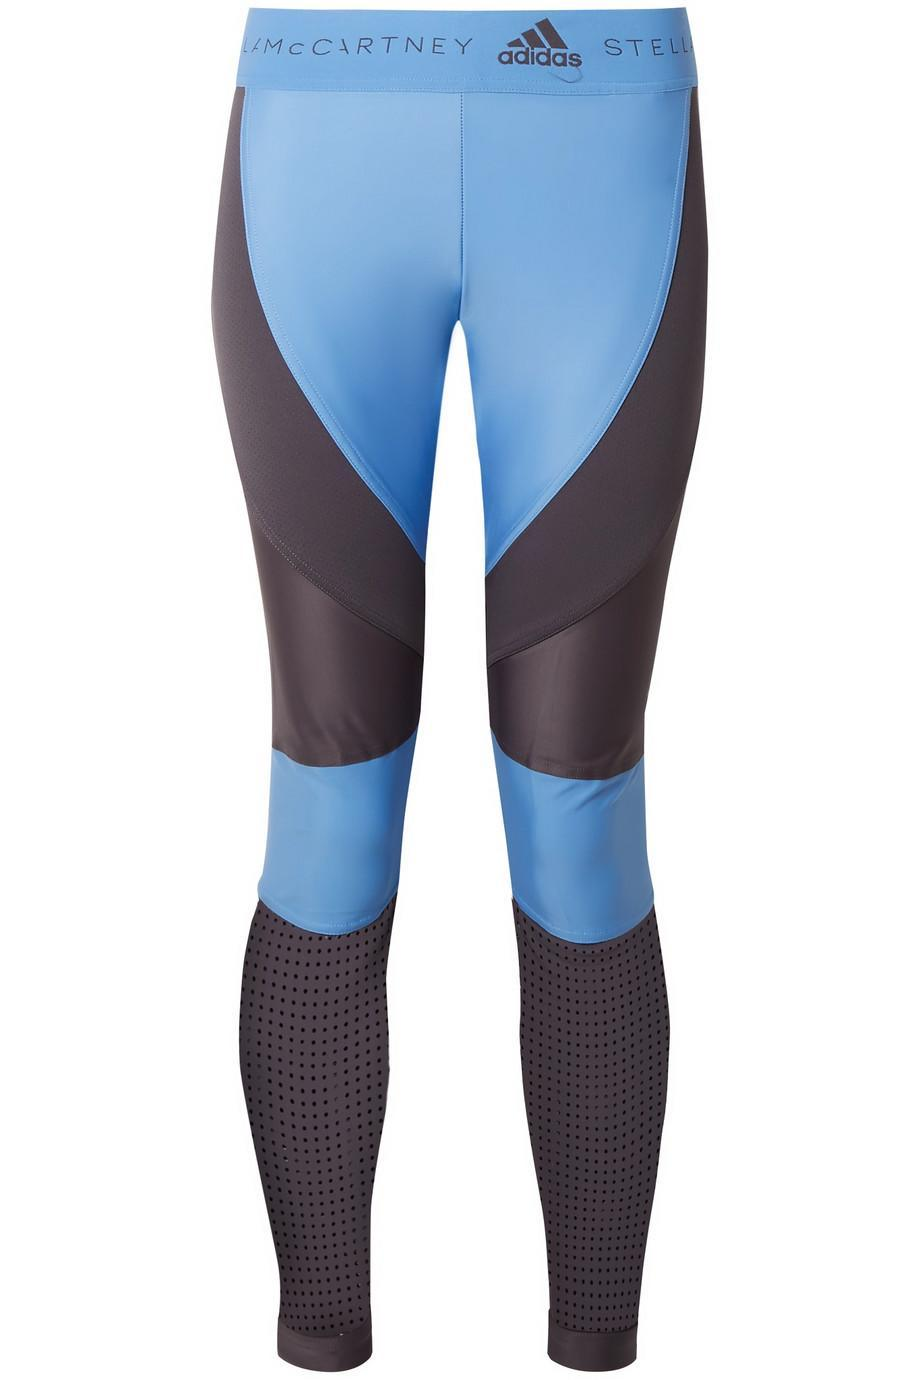 """<p>If like us you're in dire need of a good excuse to hit the gym then look no further. Stella McCartney's coveted sportswear has graced the sale and we're starting with these leggings. <em><a href=""""https://www.net-a-porter.com/gb/en/product/996556/adidas_by_stella_mccartney/mesh-paneled-climalite-stretch-leggings"""" rel=""""nofollow noopener"""" target=""""_blank"""" data-ylk=""""slk:Shop now"""" class=""""link rapid-noclick-resp"""">Shop now</a>.</em> </p>"""